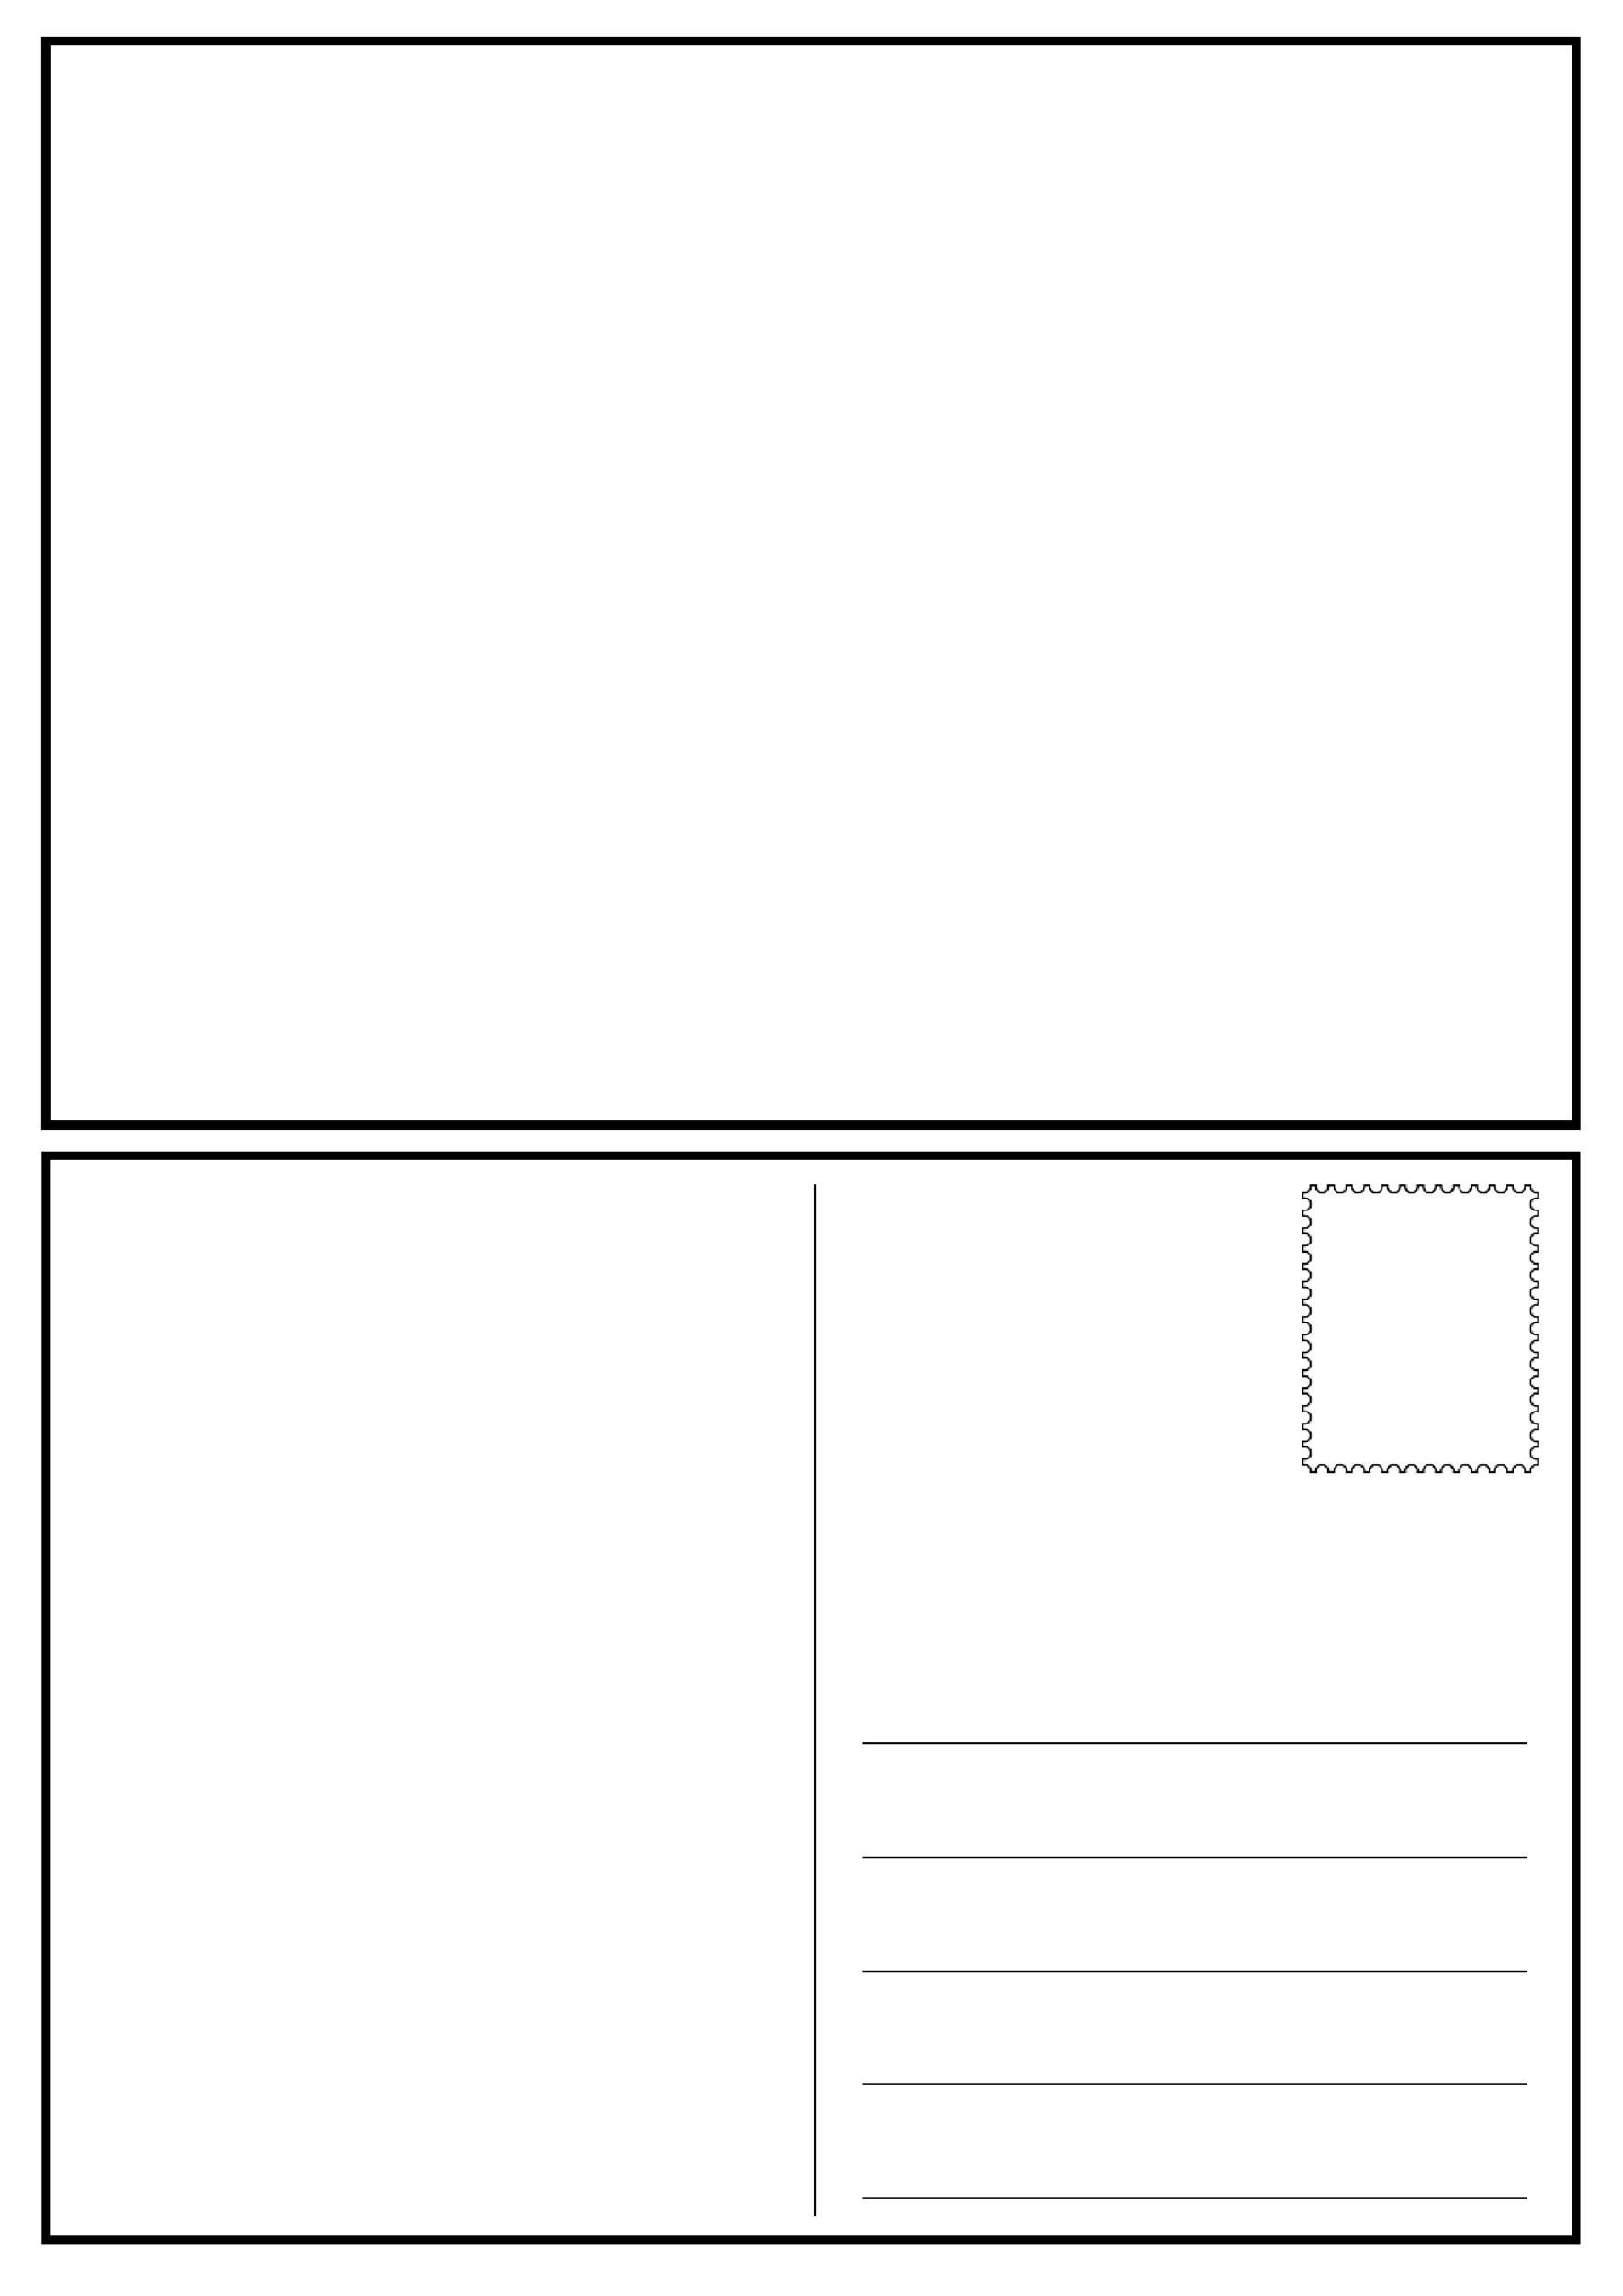 008 Unique Free Postcard Template Download Microsoft Word Highest Clarity Full